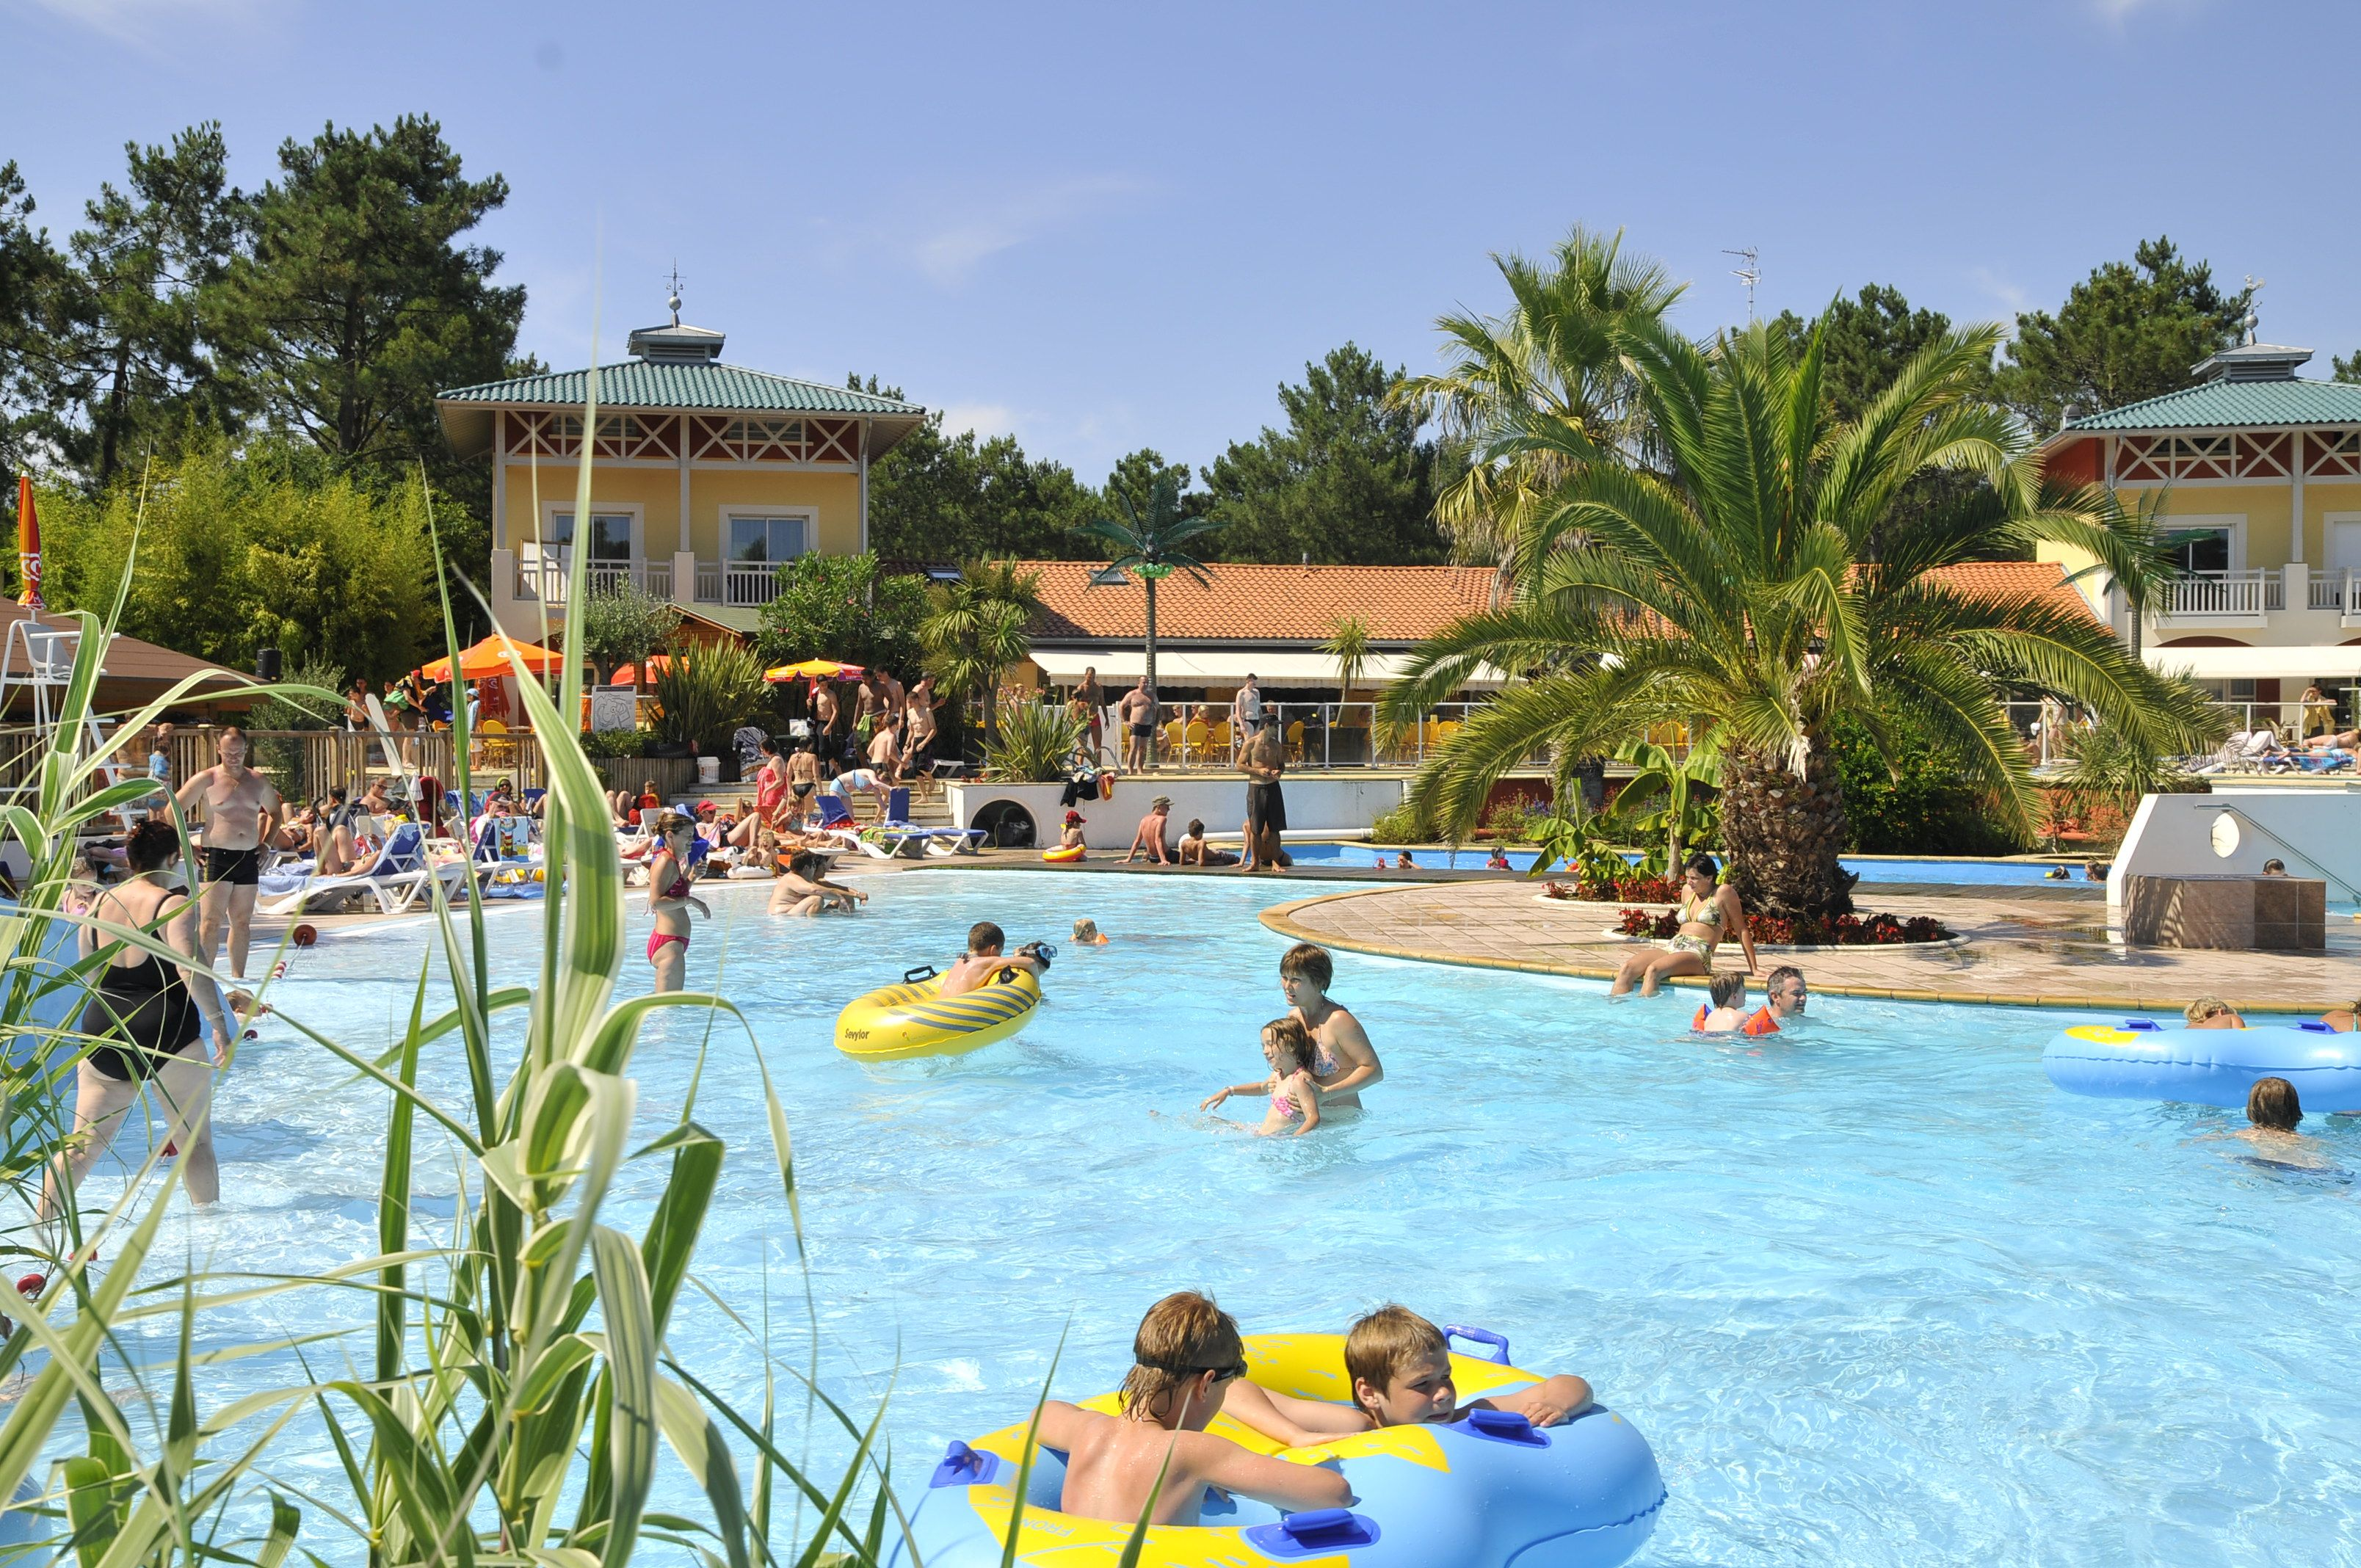 Camping le sylvamar labenne oc an camping for Camping a biarritz avec piscine